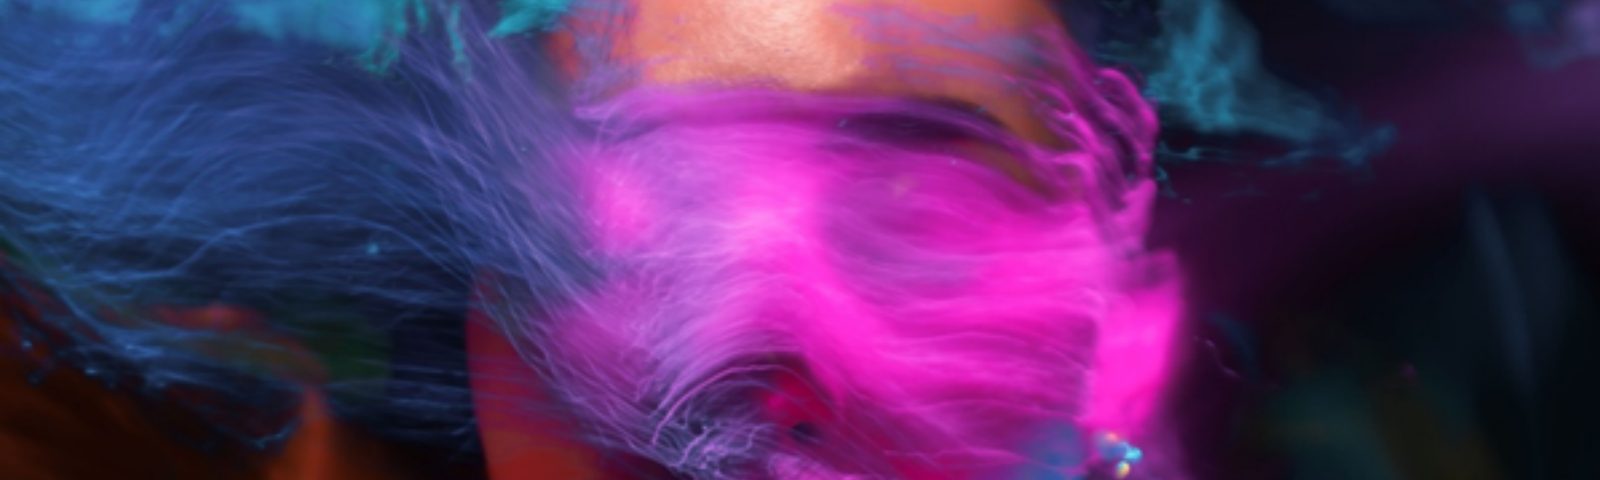 Photo by Sergey Katyshkin from Pexels showing a face mostly obscured by vibrant airbrushed colors of pinks, purples, oranges and blues.